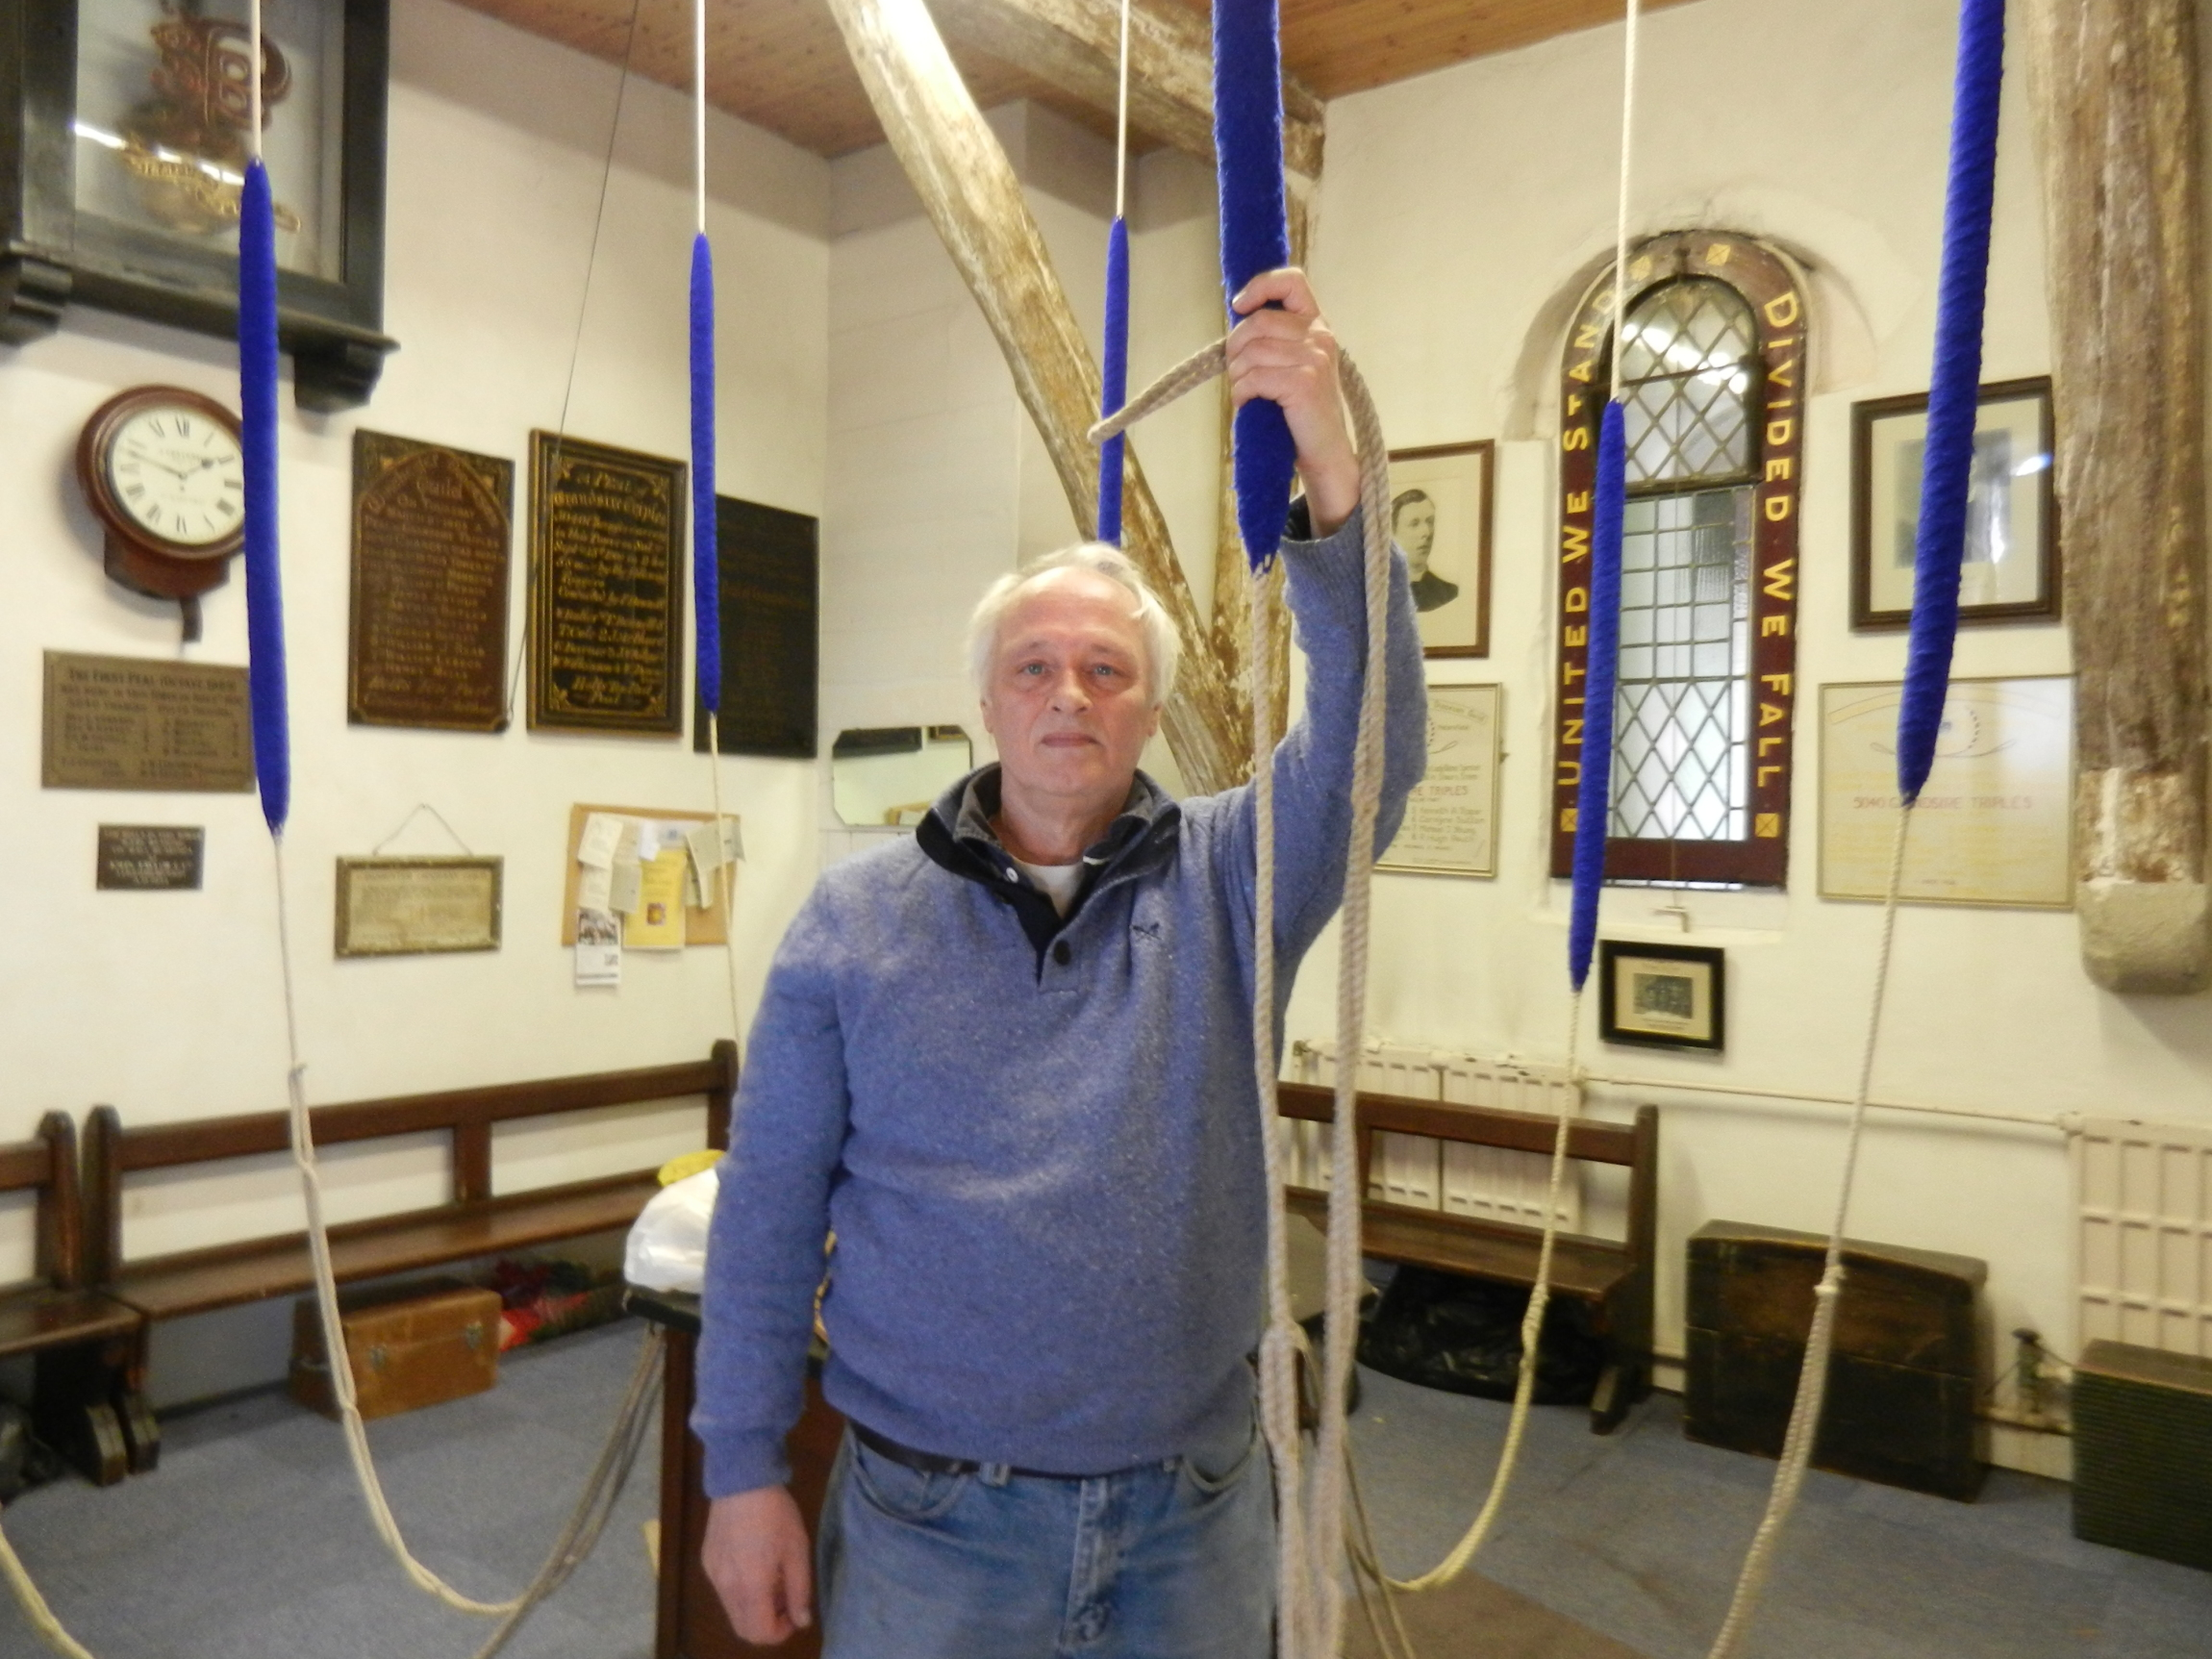 Photograph of Barry Wateridge, at St Peter's Church Bell Tower, Petersfield before he commenced ringing for the Duke of Edinburgh's Funeral Windsor.